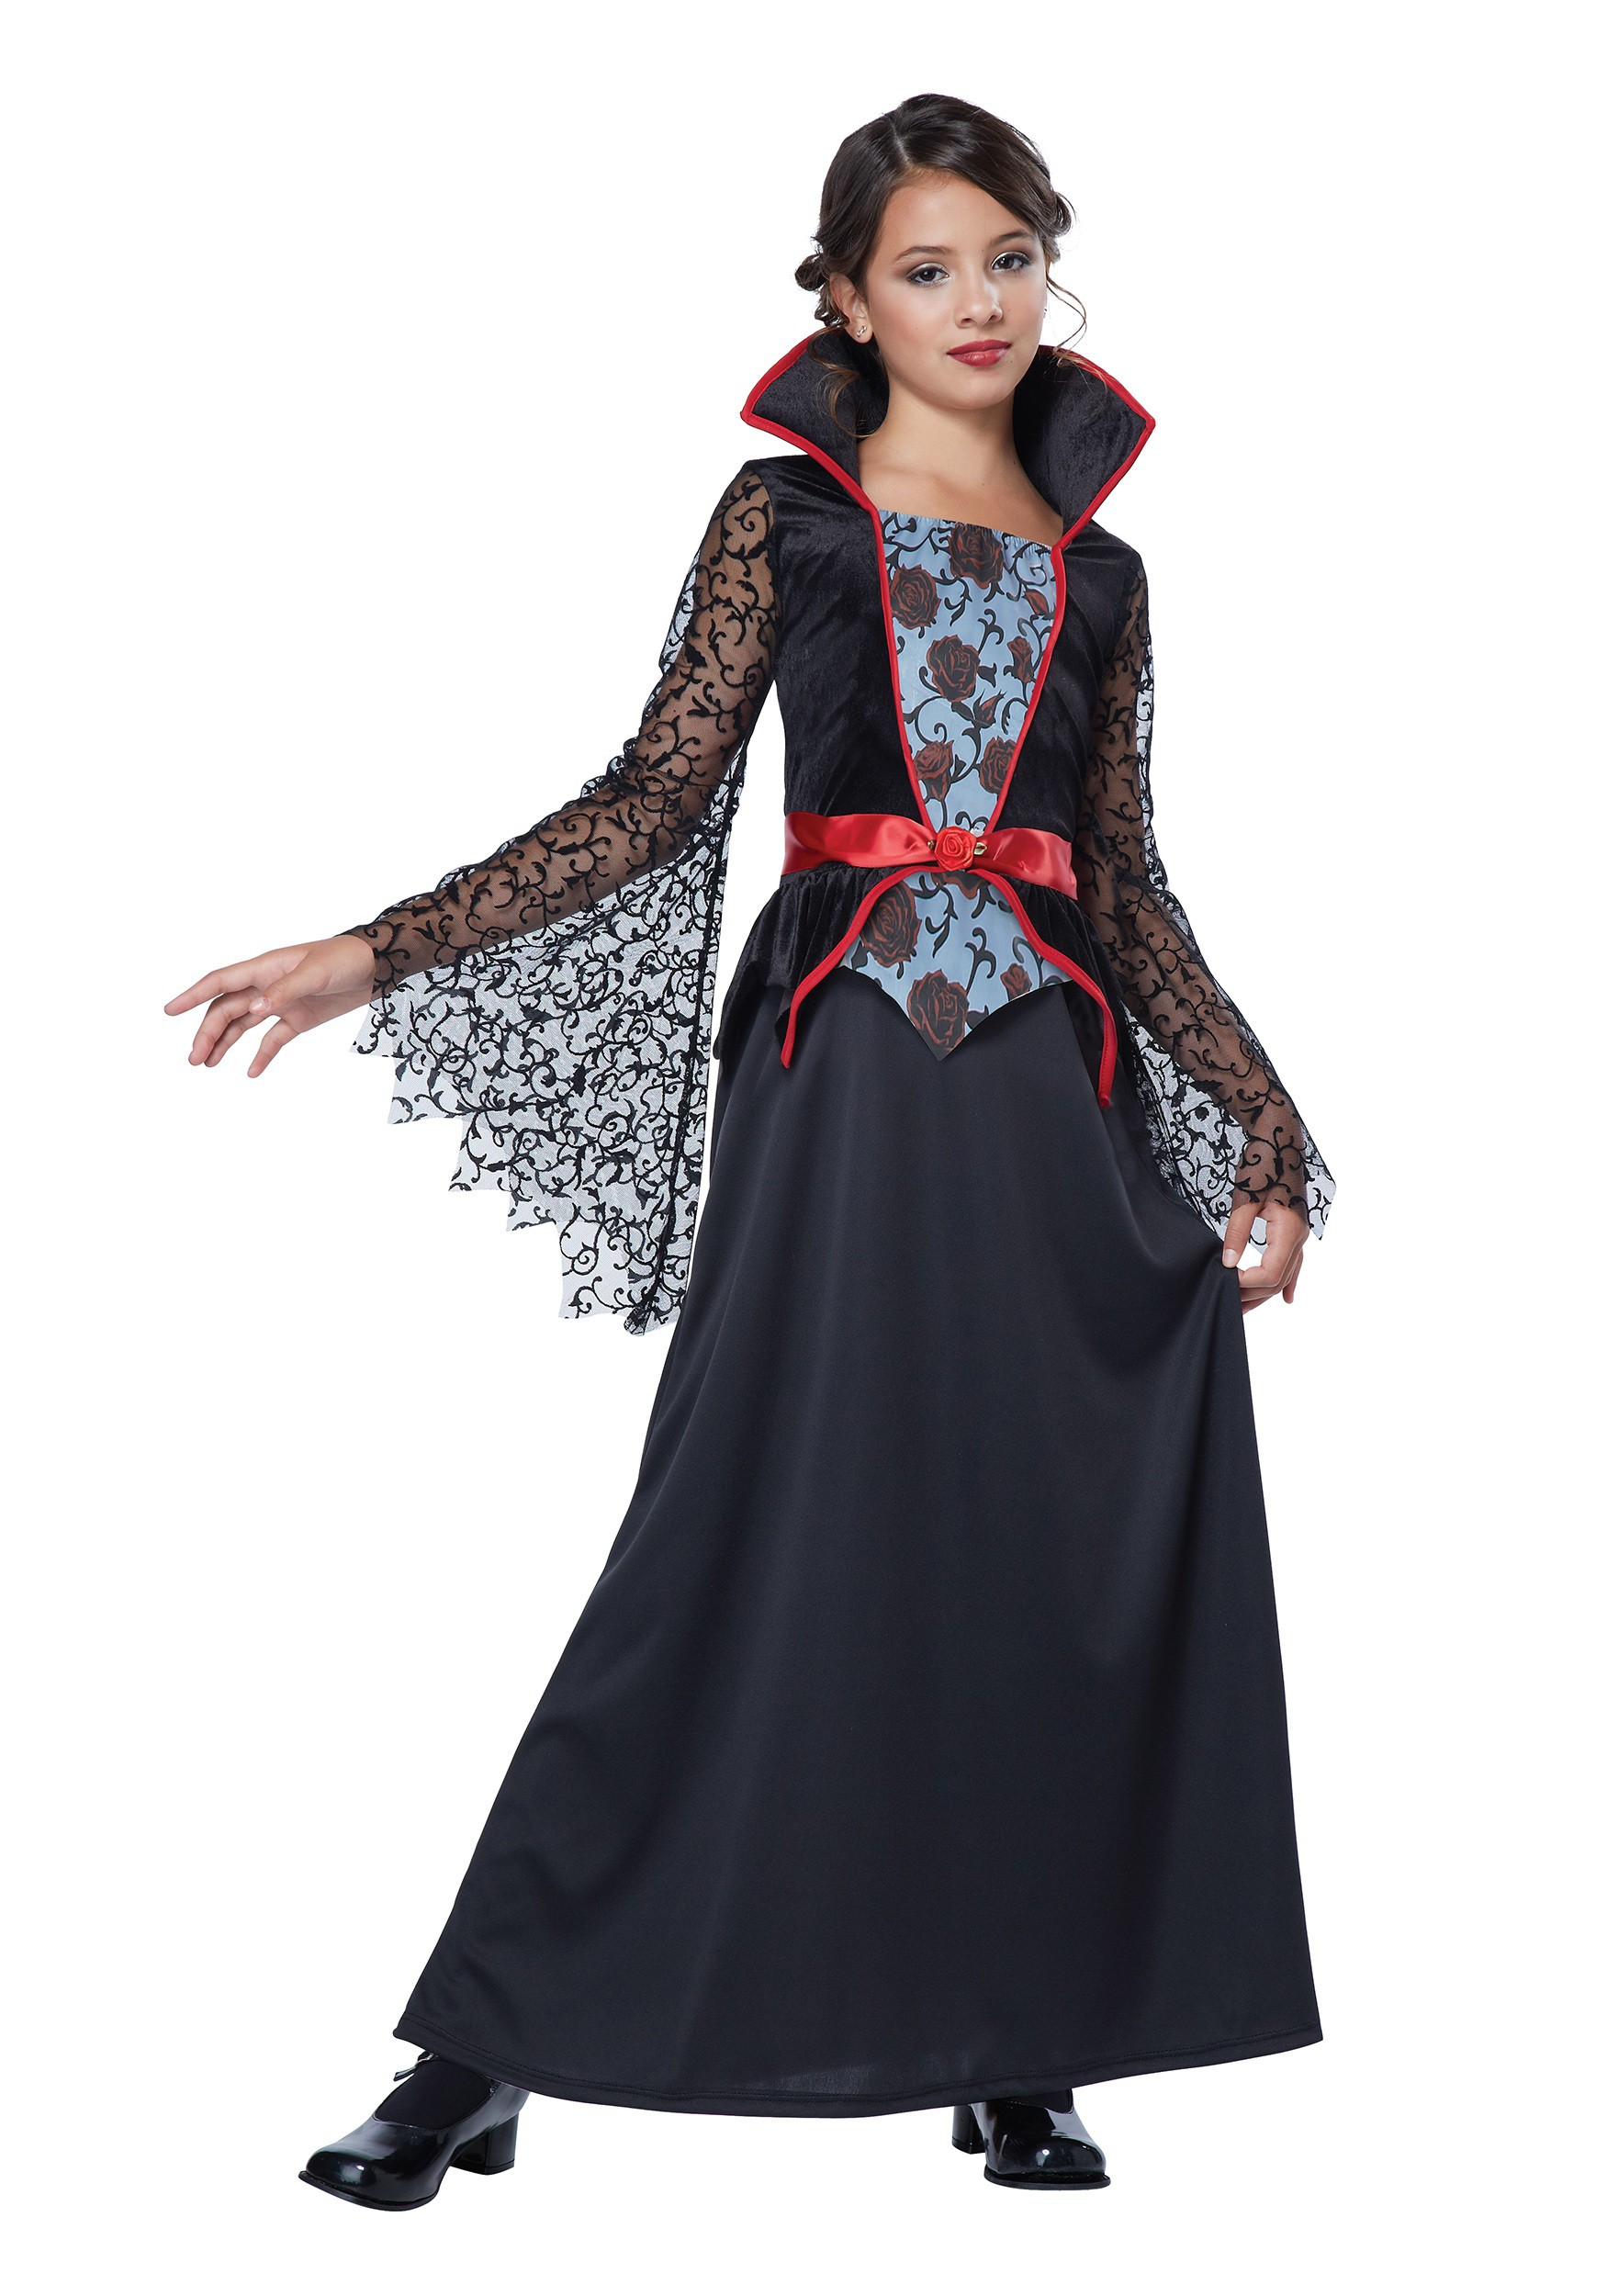 Girls Countess Bloodthorne Vampiress Costume